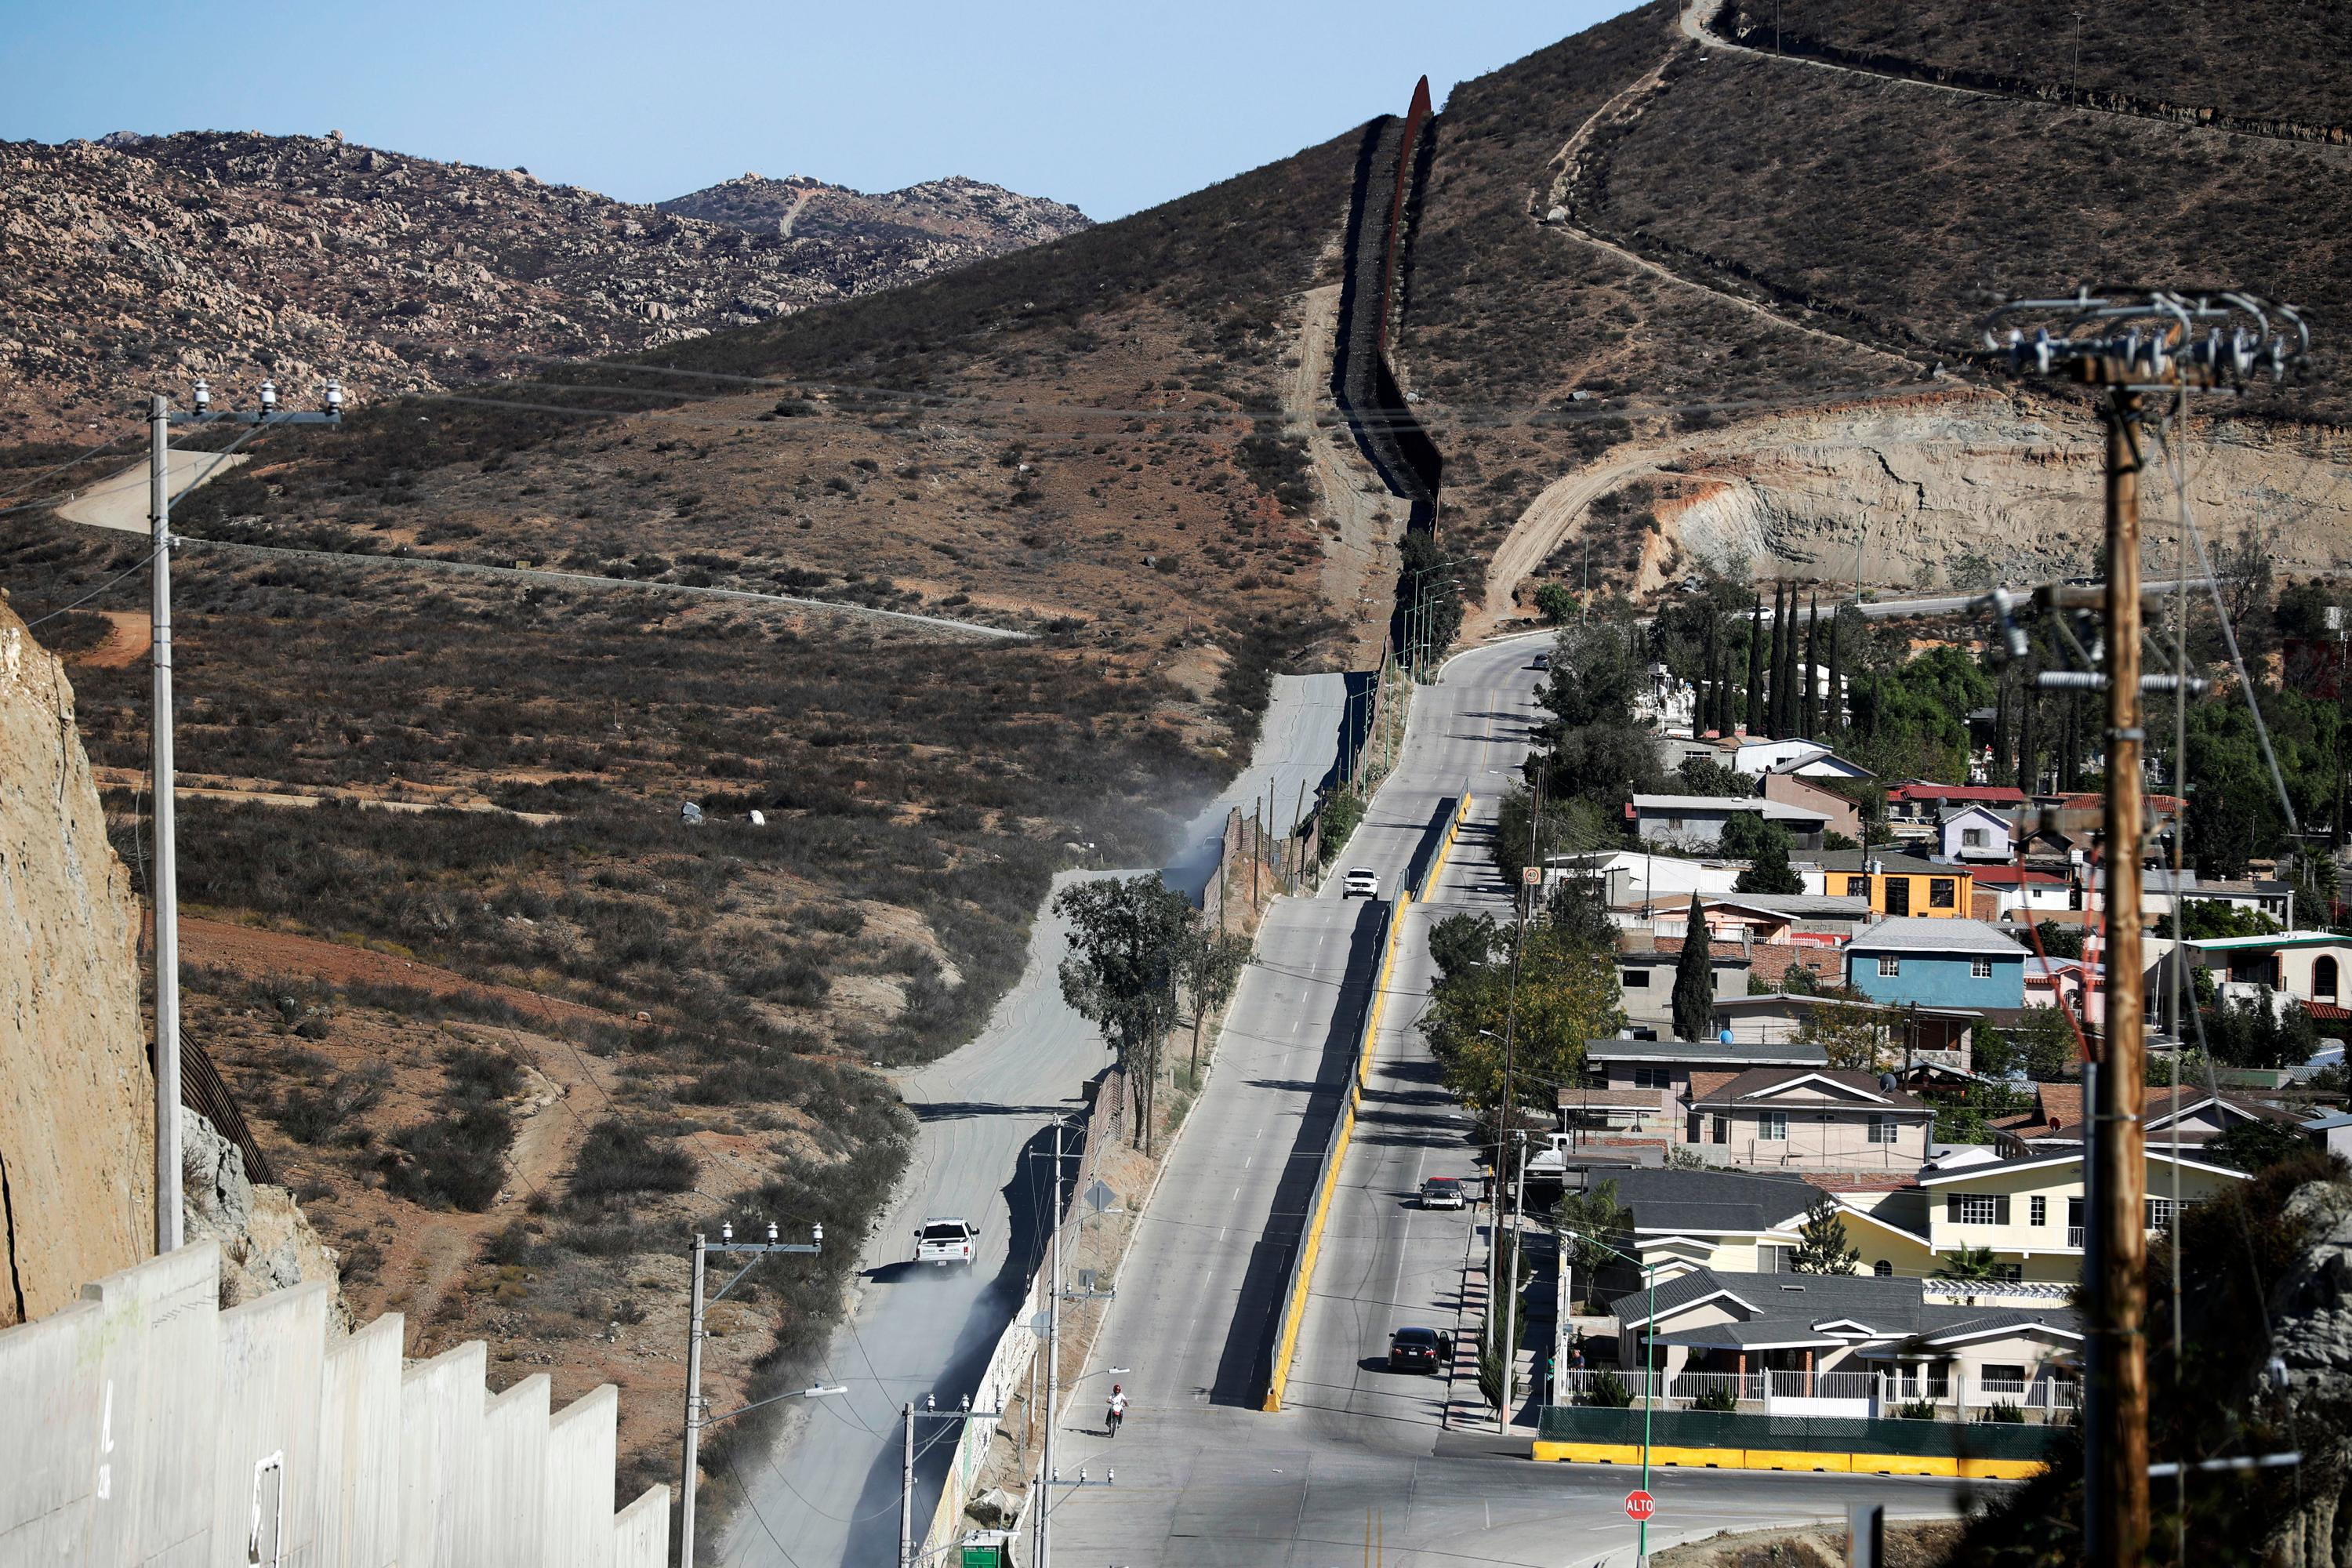 FILE - In this Nov. 9, 2016 file photo, a Border Patrol vehicle drives by the border fence in Tecate, Calif., left, along the metal barrier that lines the border, seen from Tecate, Mexico. (AP Photo/Gregory Bull, File)<p></p>